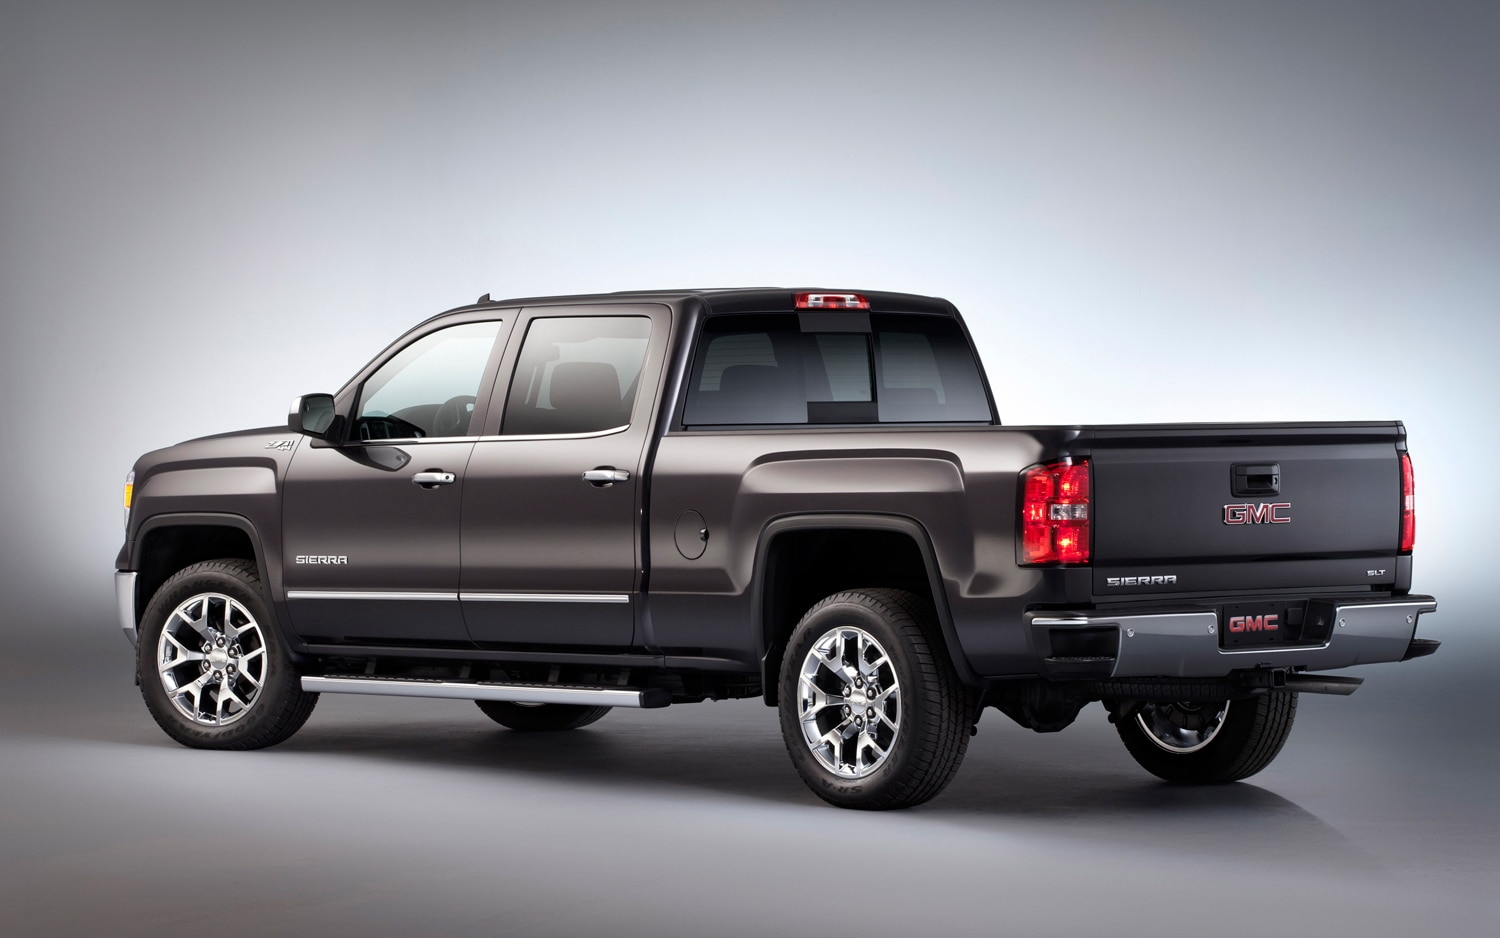 2014 chevrolet silverado claims best in class standard v 6 torque. Black Bedroom Furniture Sets. Home Design Ideas